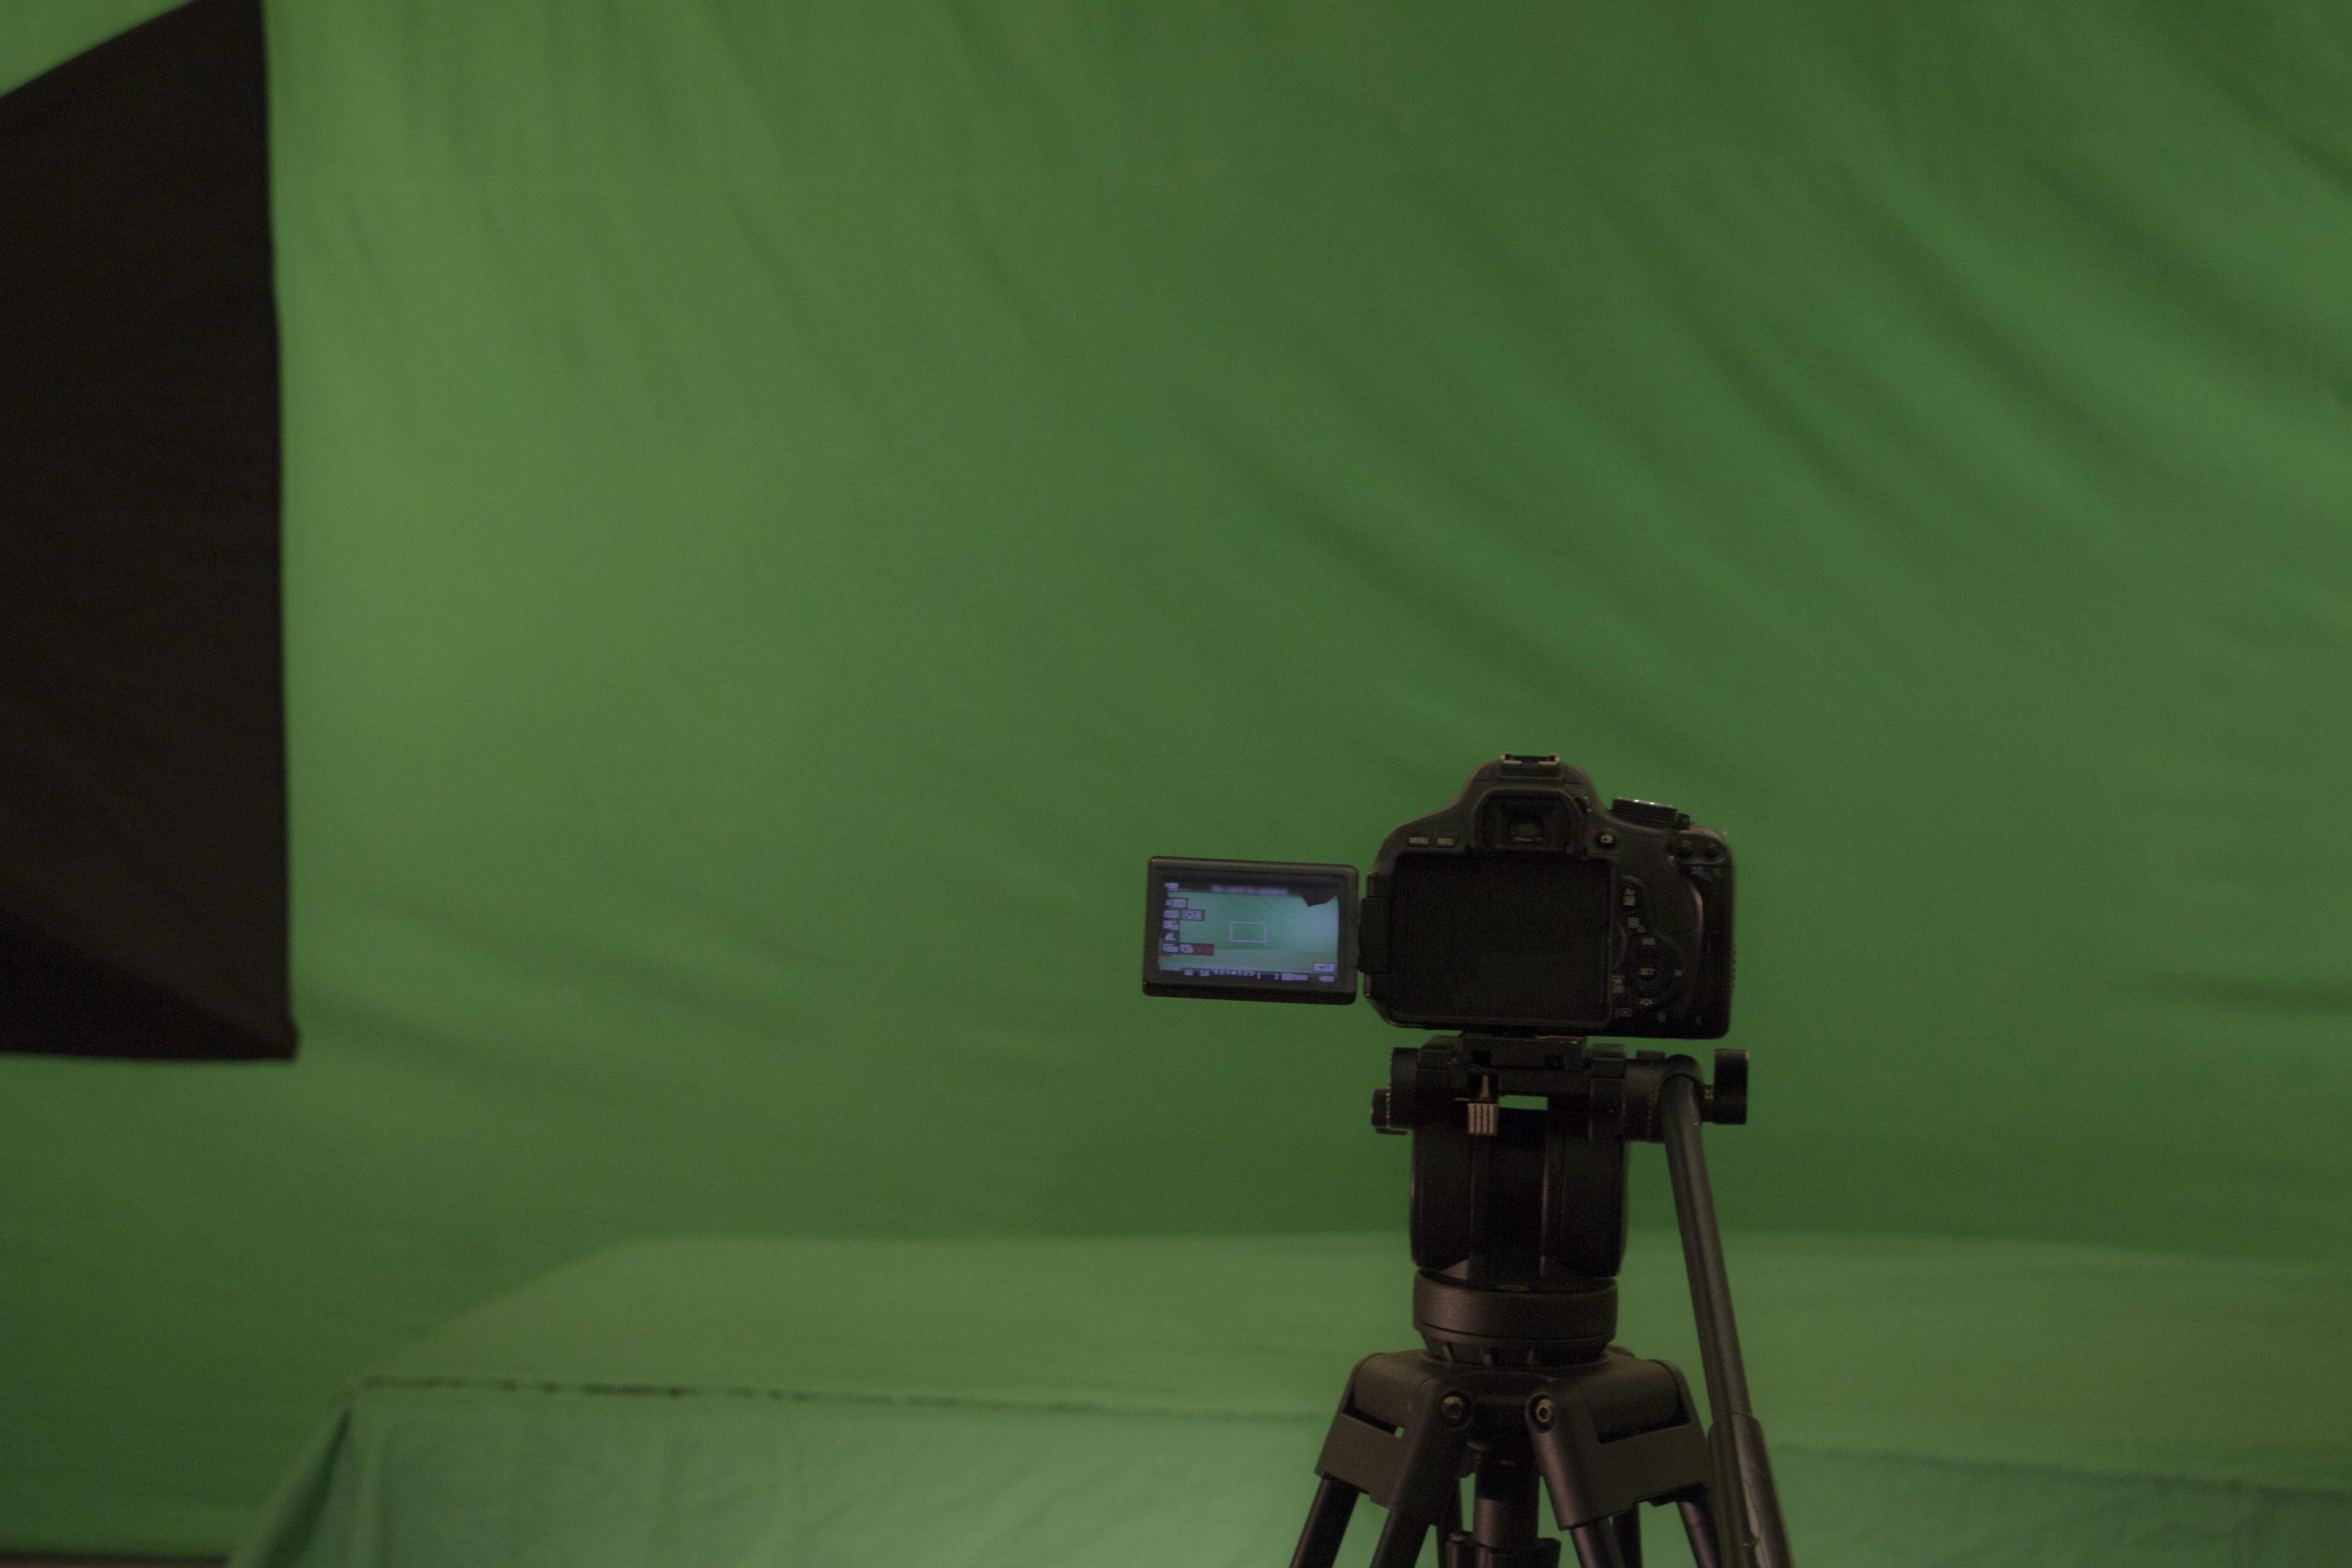 Green Screen with Camera